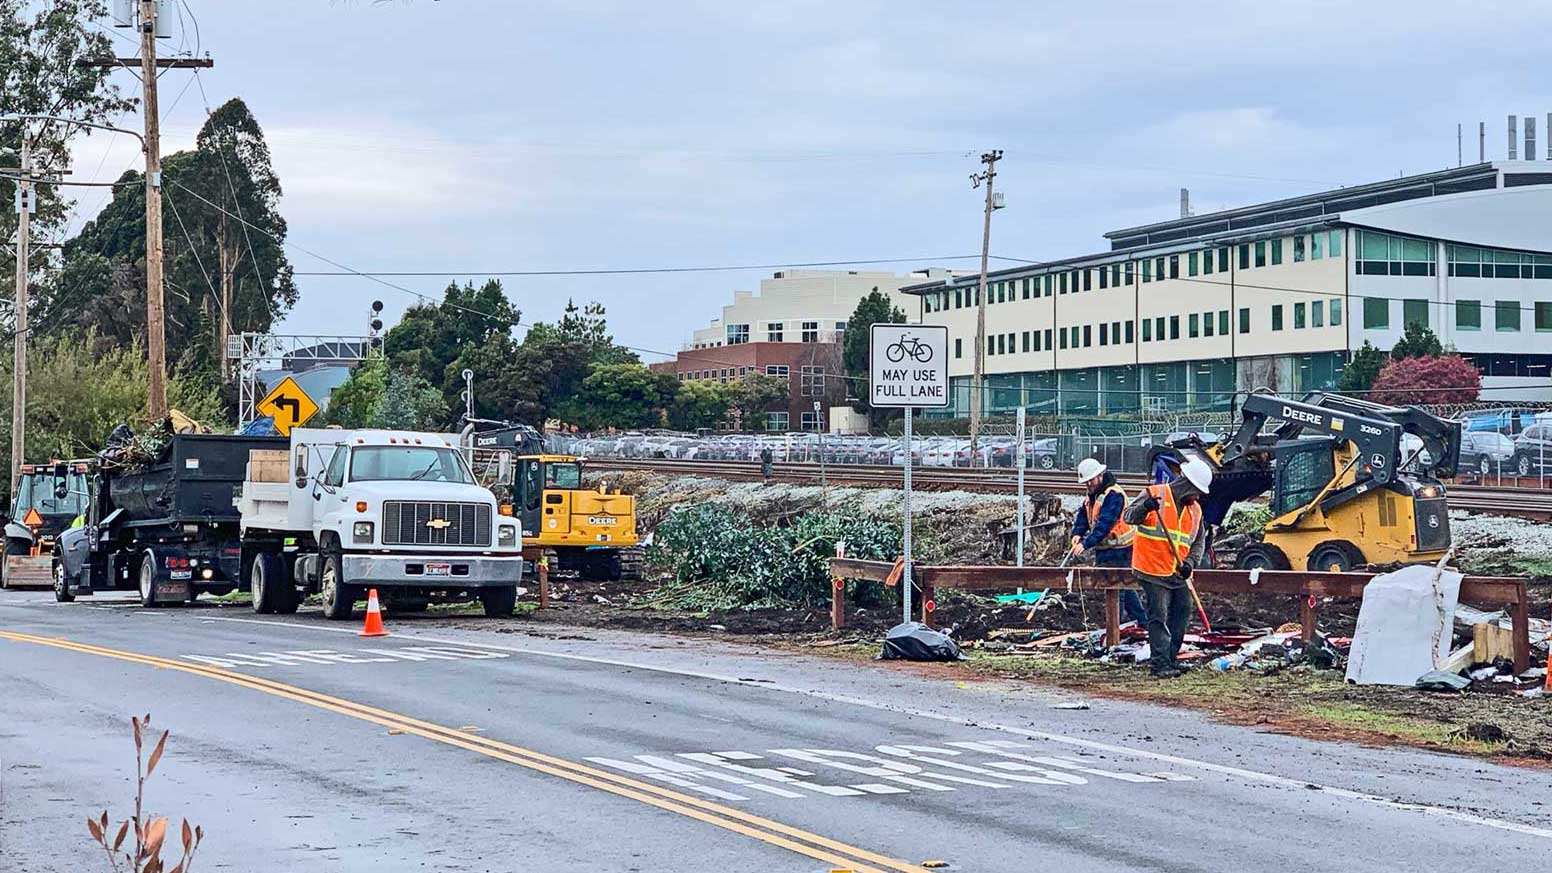 In Wake of Nady Building Demolition & Aquatic Park Clearing, Area